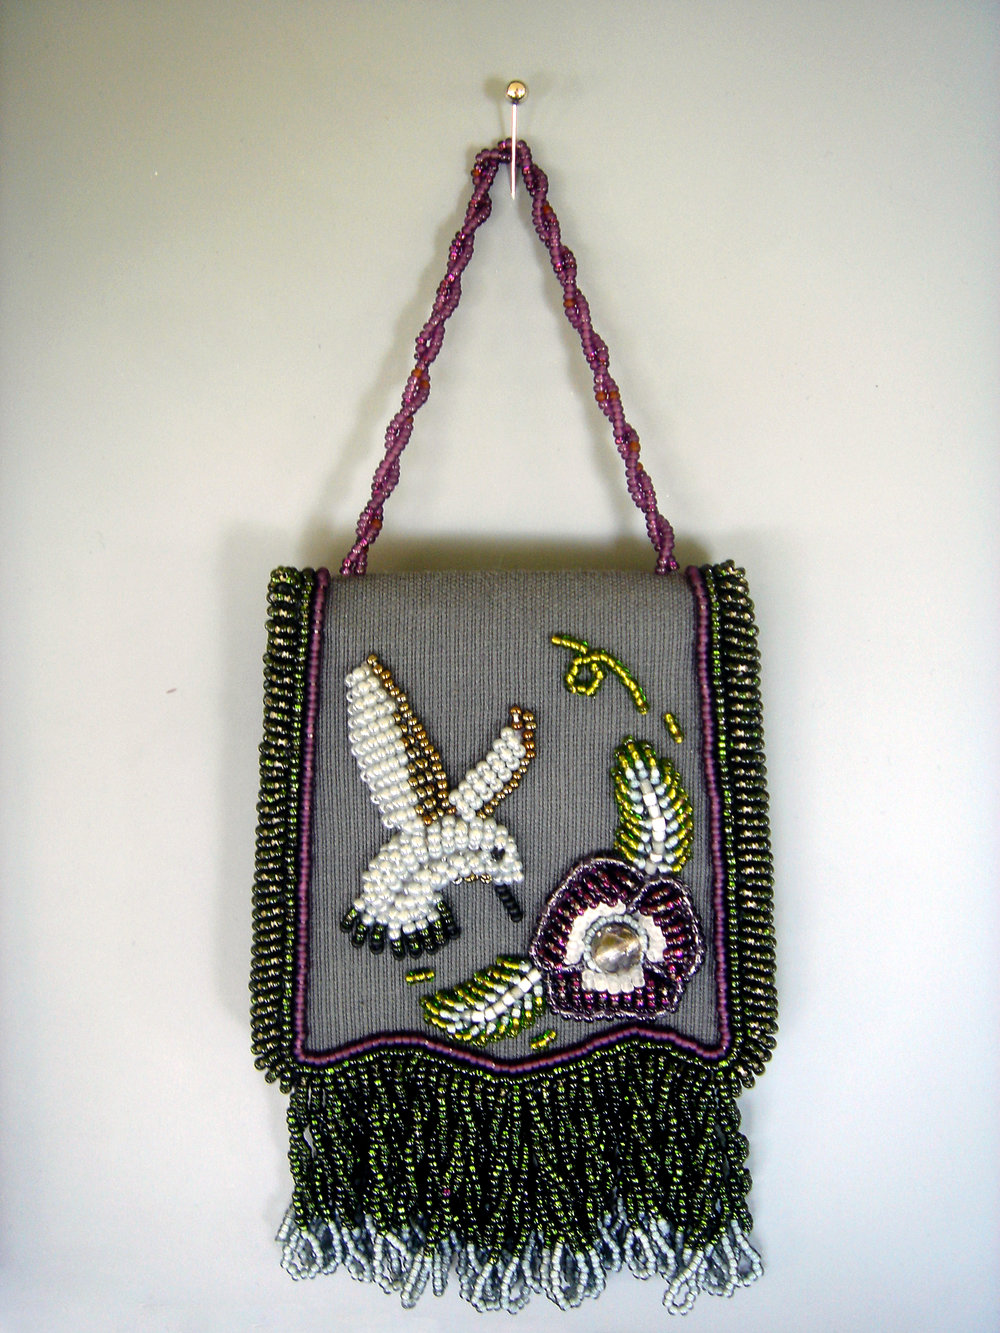 2009 - hummingbird bag.jpg